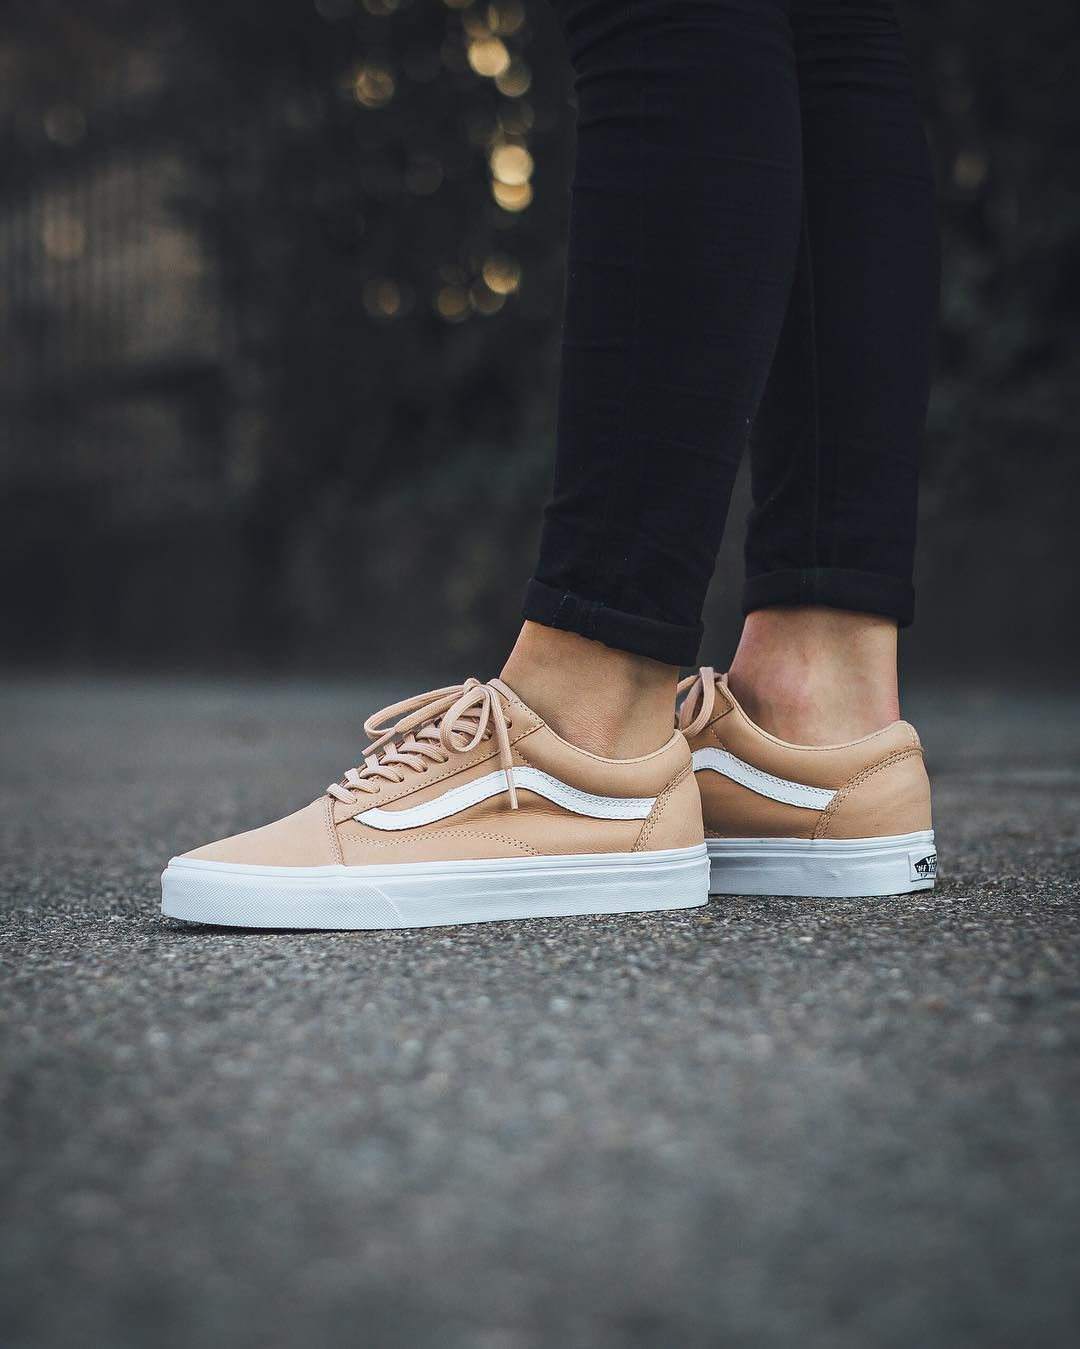 229e17bf15 VANS Old Skool